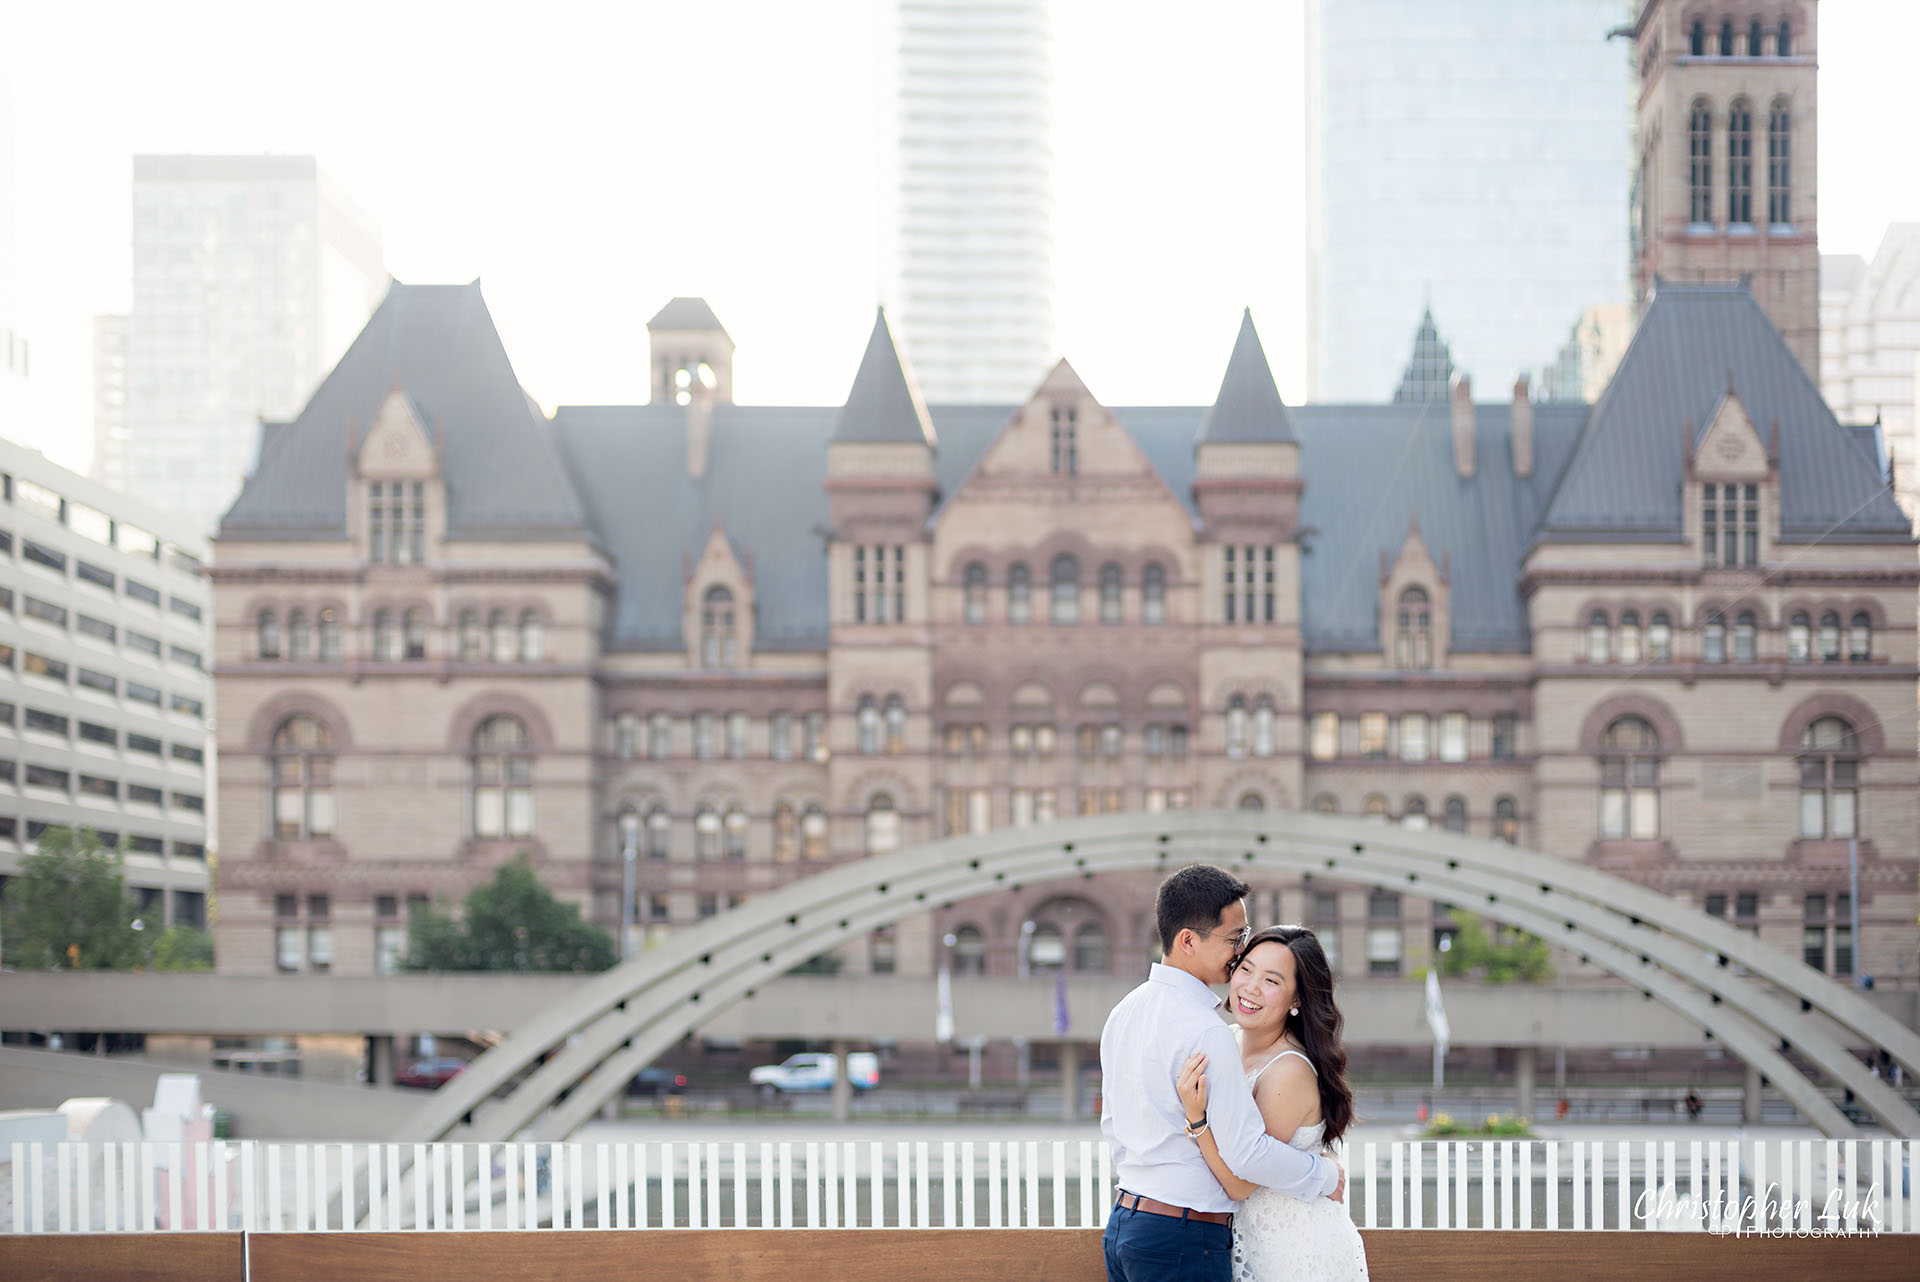 Christopher Luk Wedding Photographer Toronto City Hall Nathan Philips Square Elevated Bridge Arches Archway Bride Groom Hug Holding Each Other Intimate Natural Candid Photojournalistic Wide Landscape